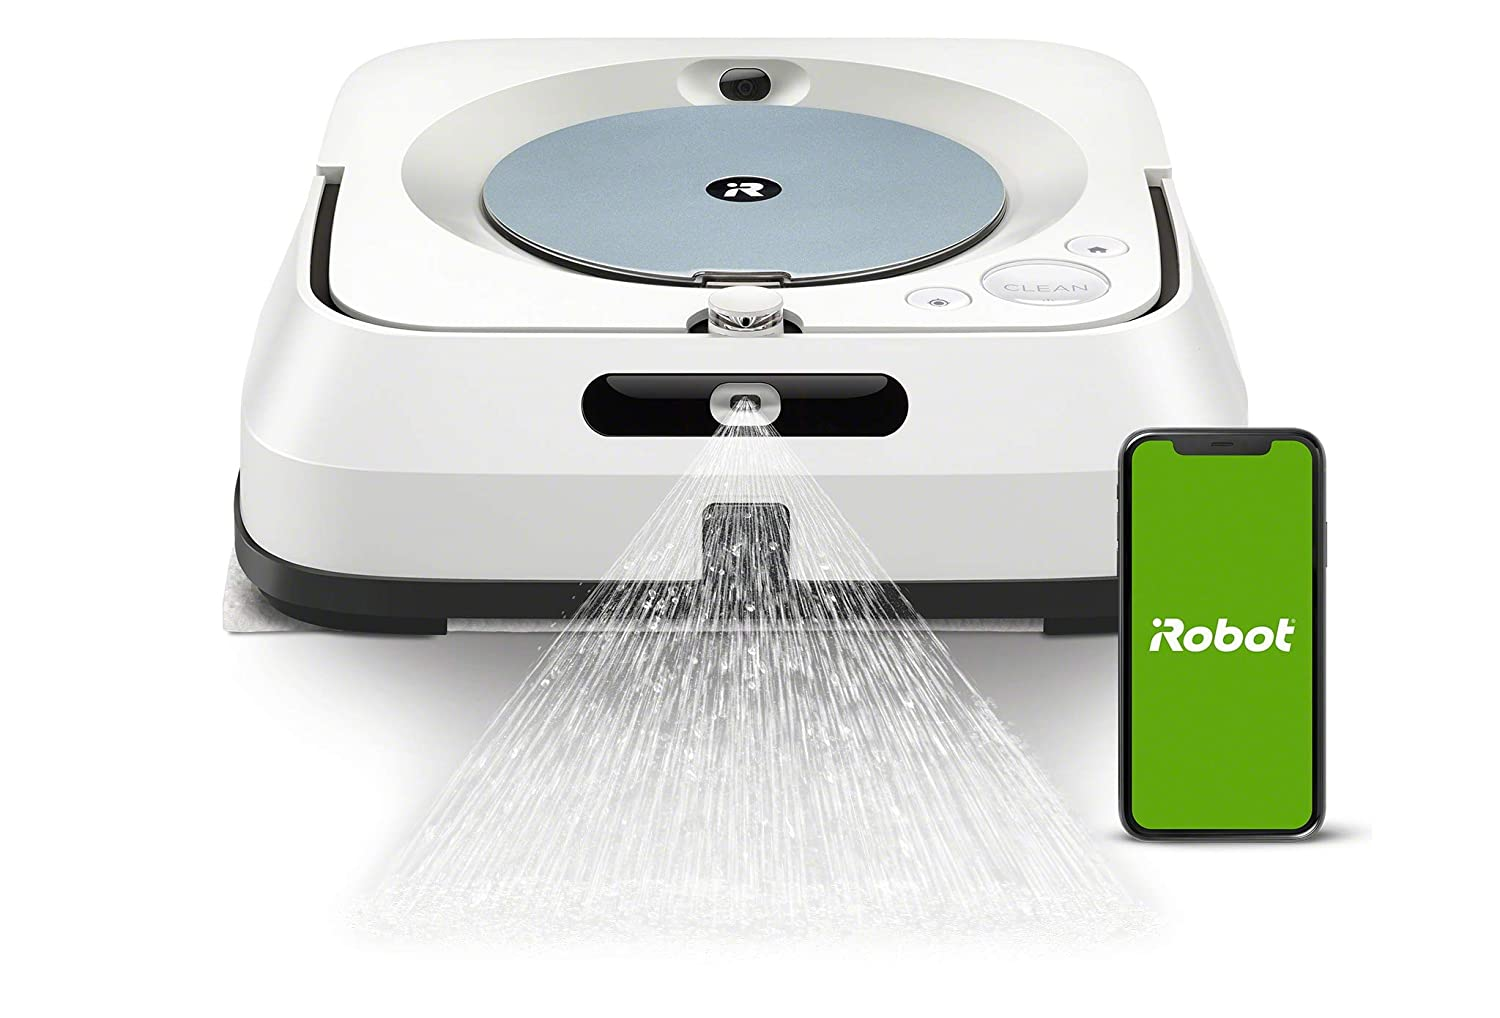 Get iRobot's Roomba 971/976 worth Rs 29,900 FREE on purchase of Braava Jet m6